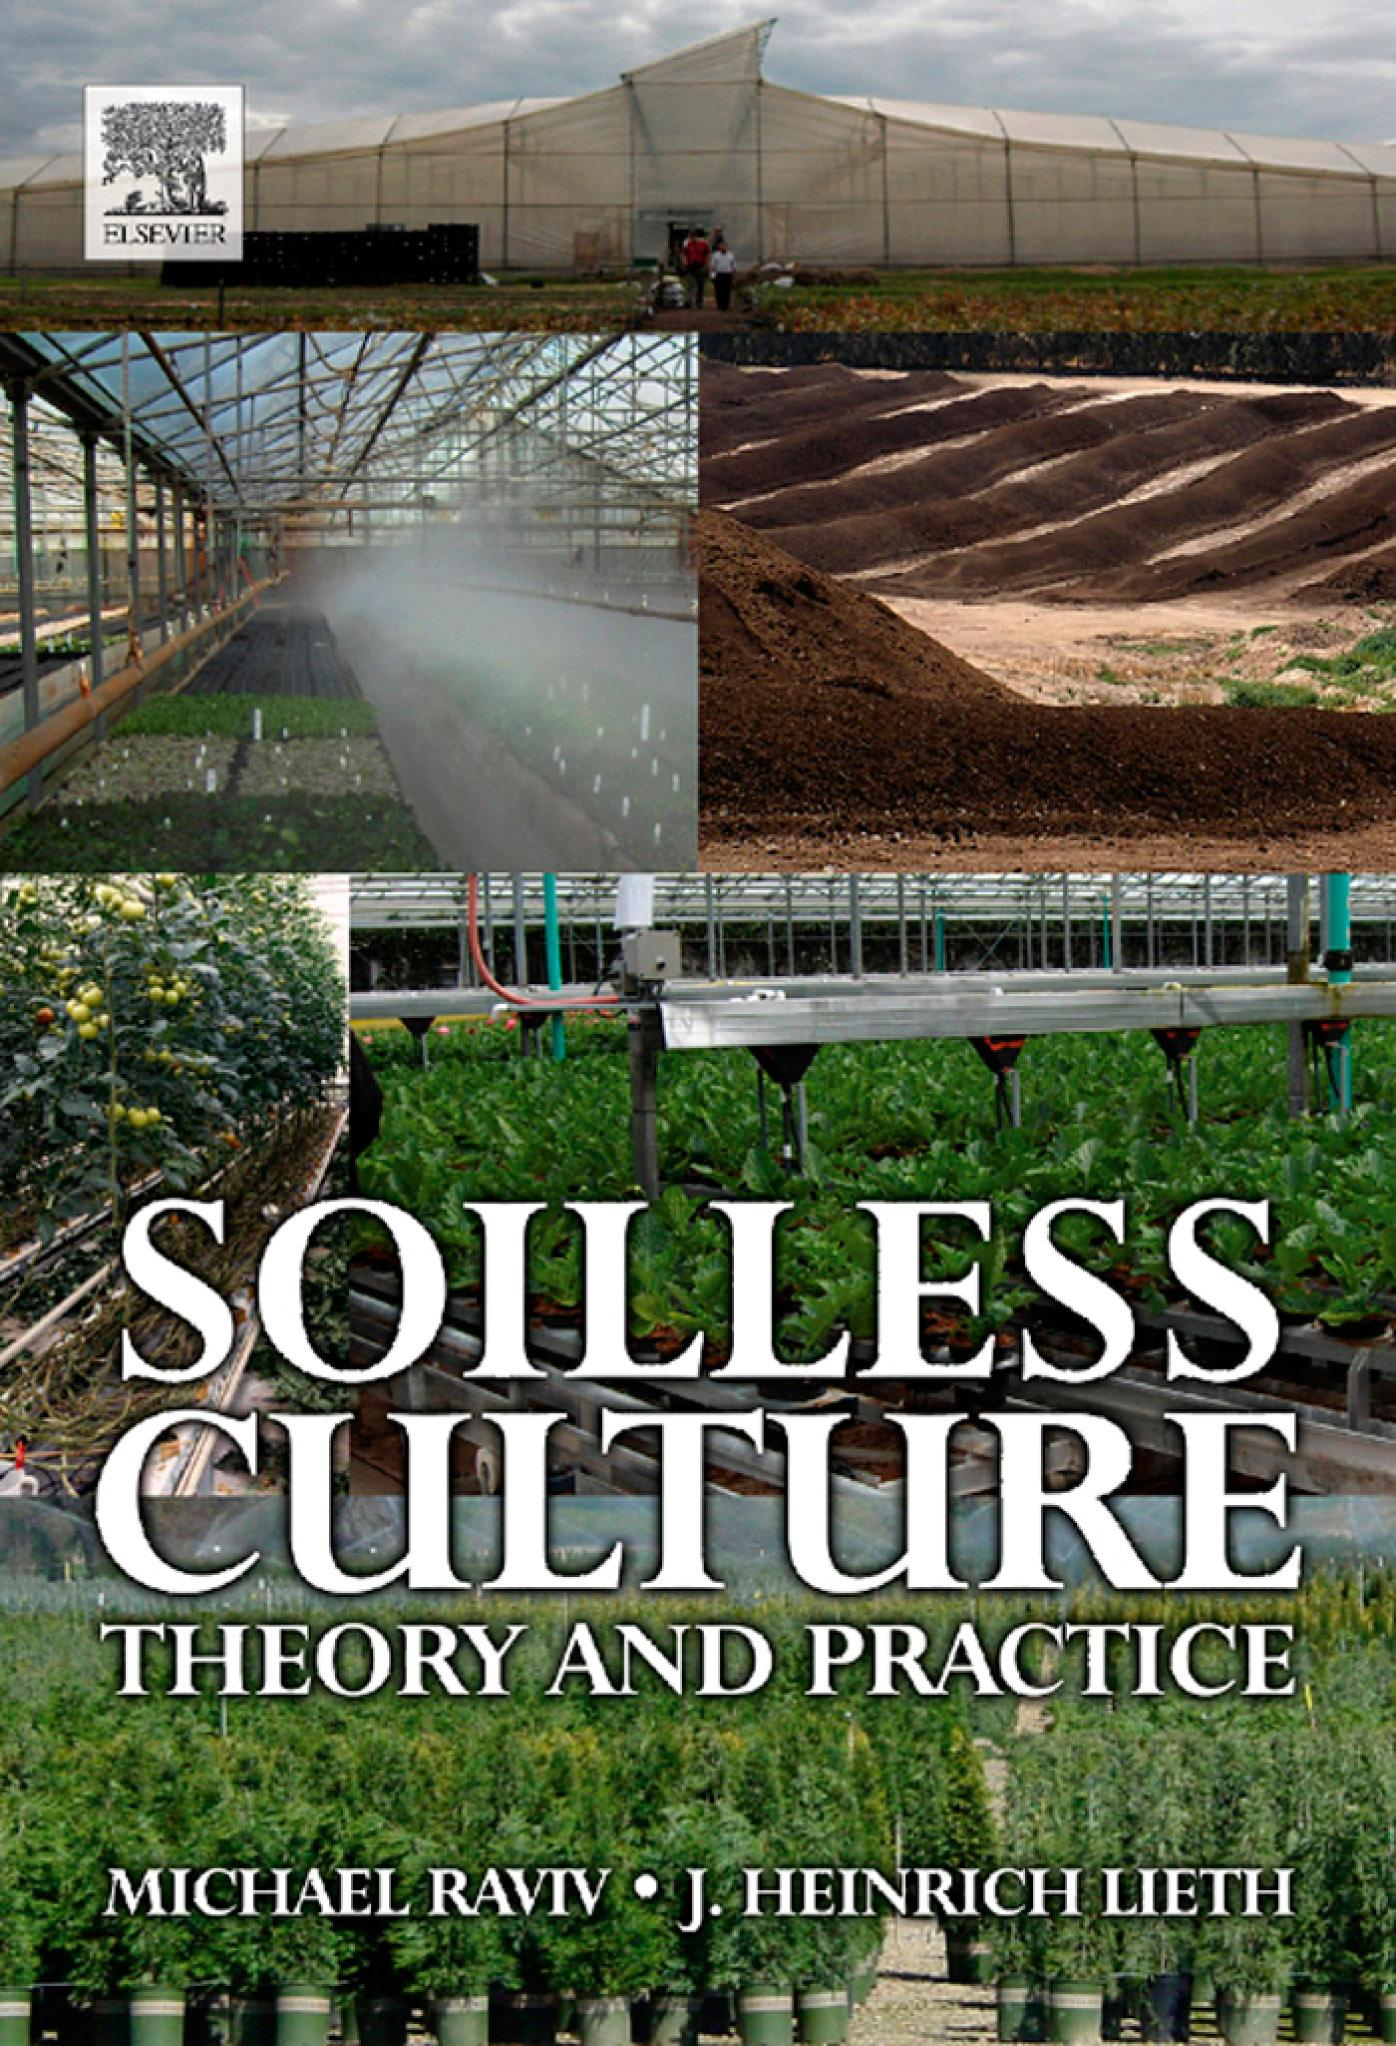 Soilless Culture: Theory and Practice: Theory and Practice EB9780080556420